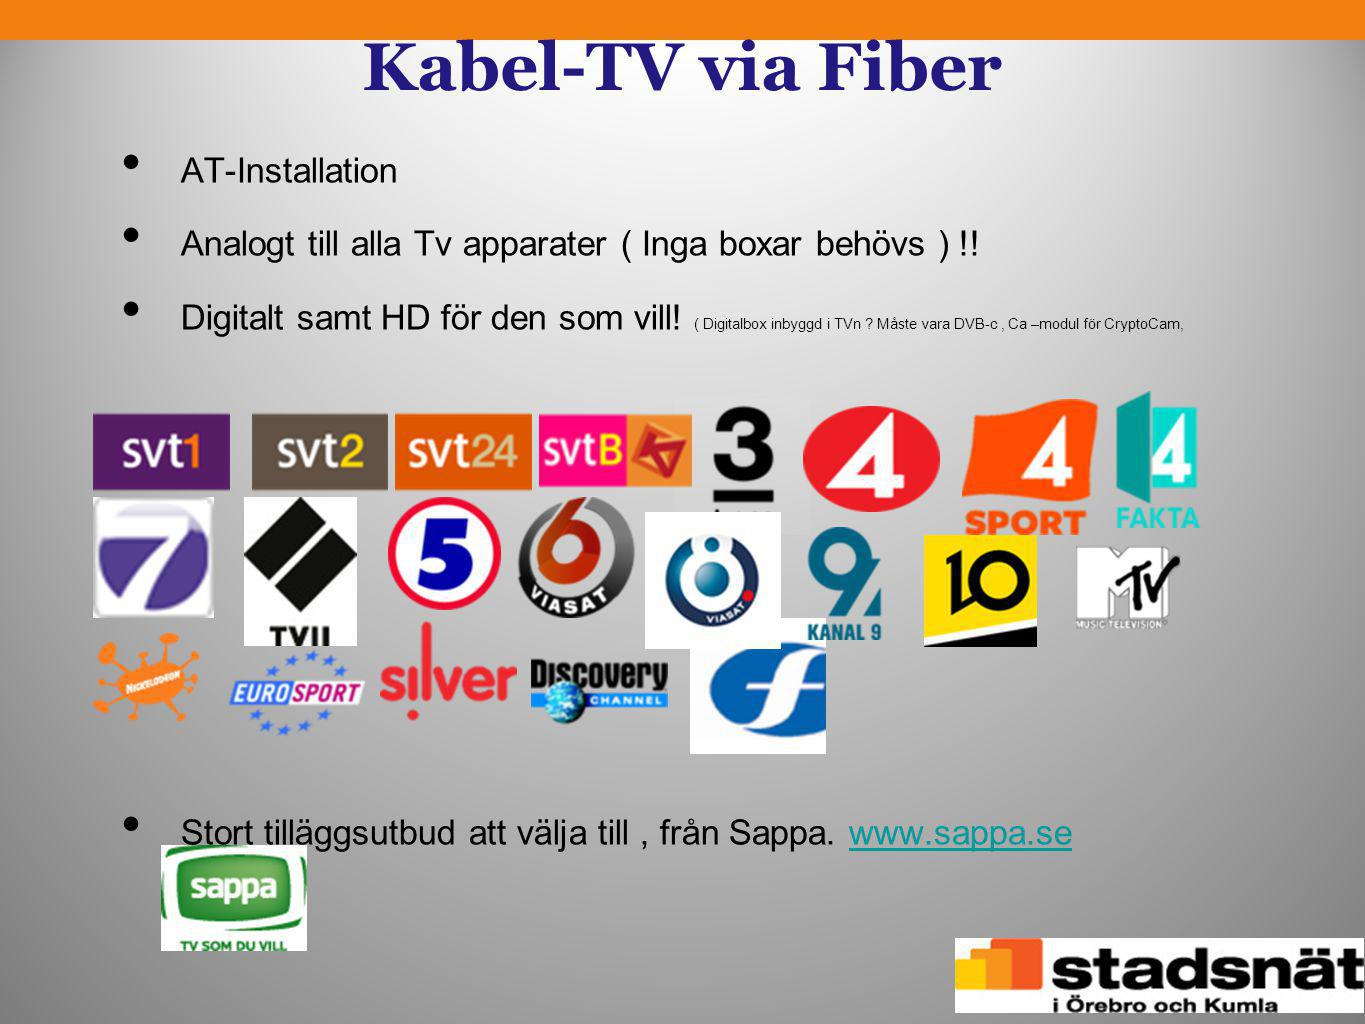 Kabel-TV via Fiber AT-Installation